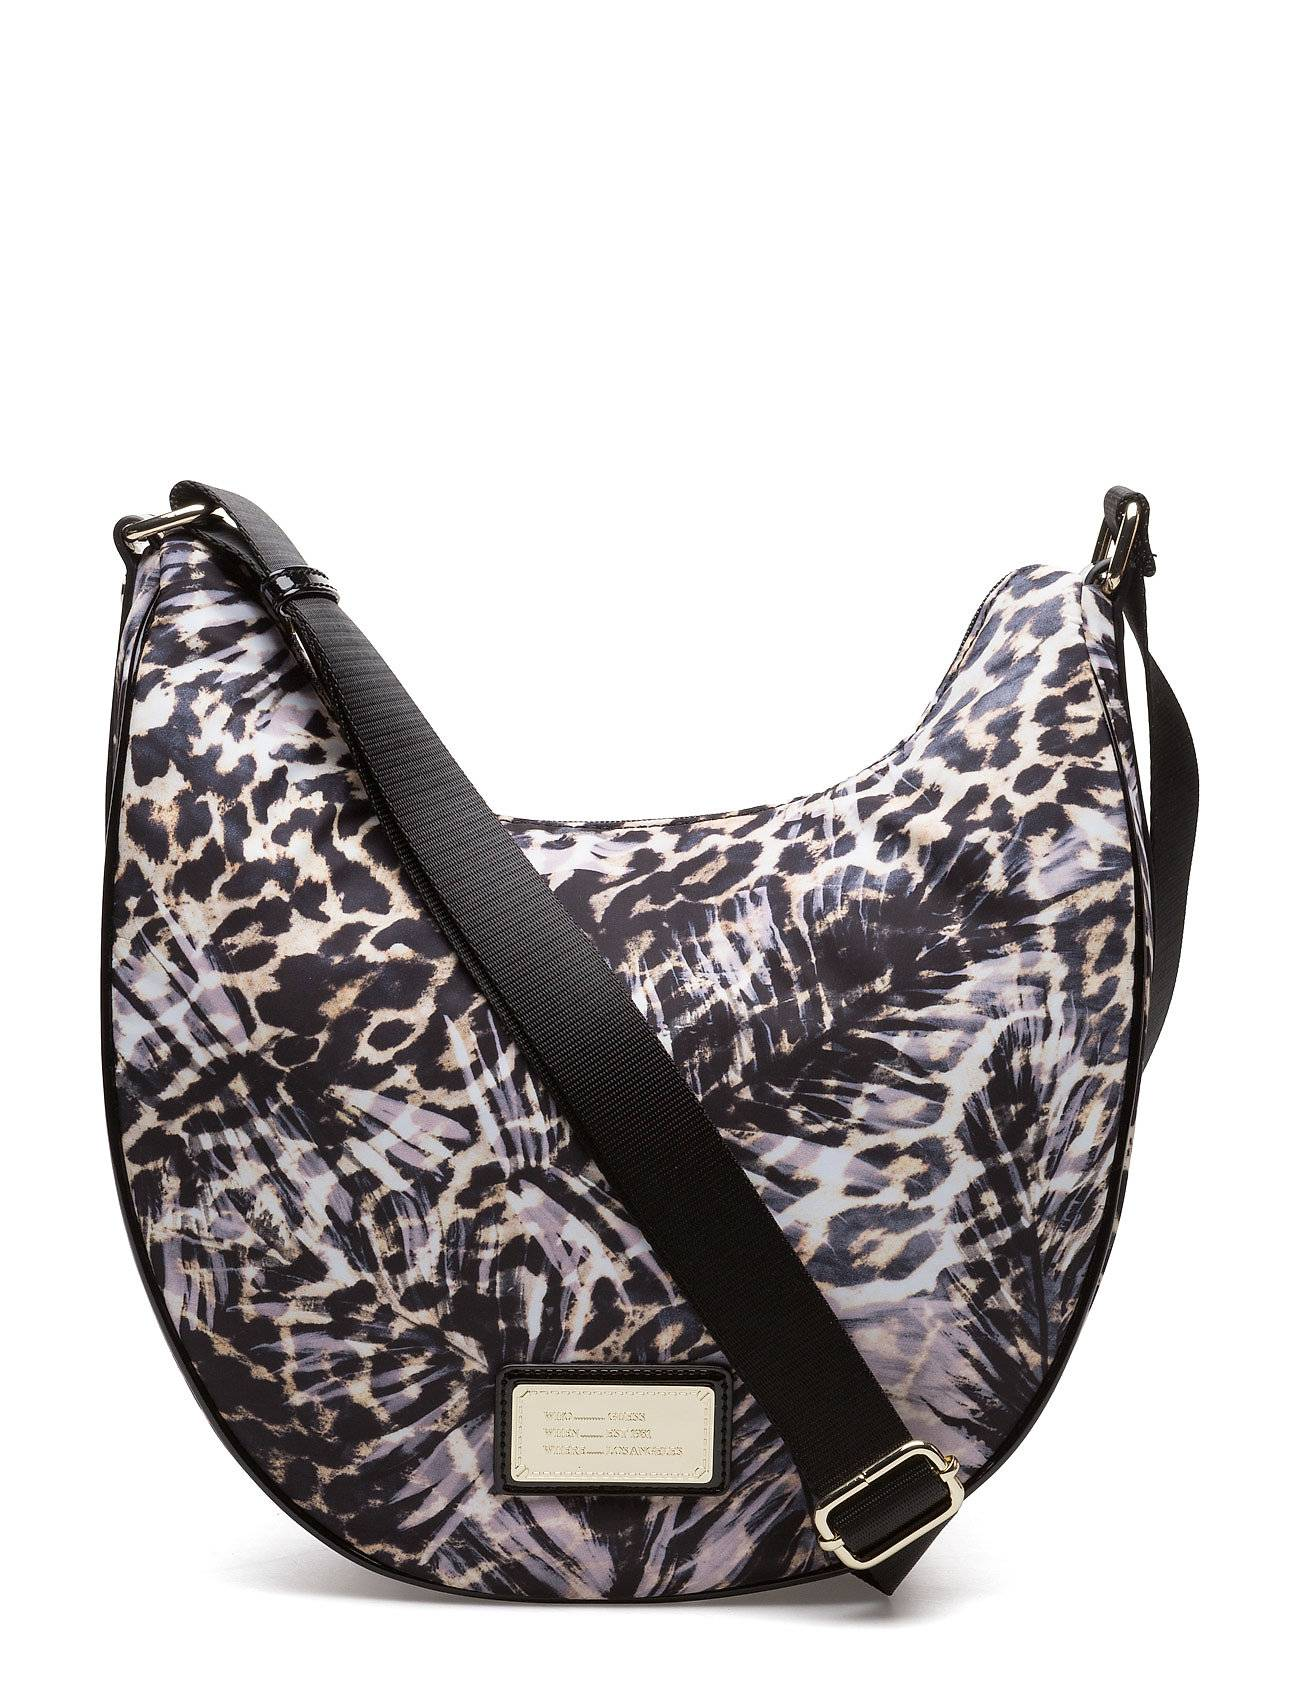 GUESS Florencia Small Hobo